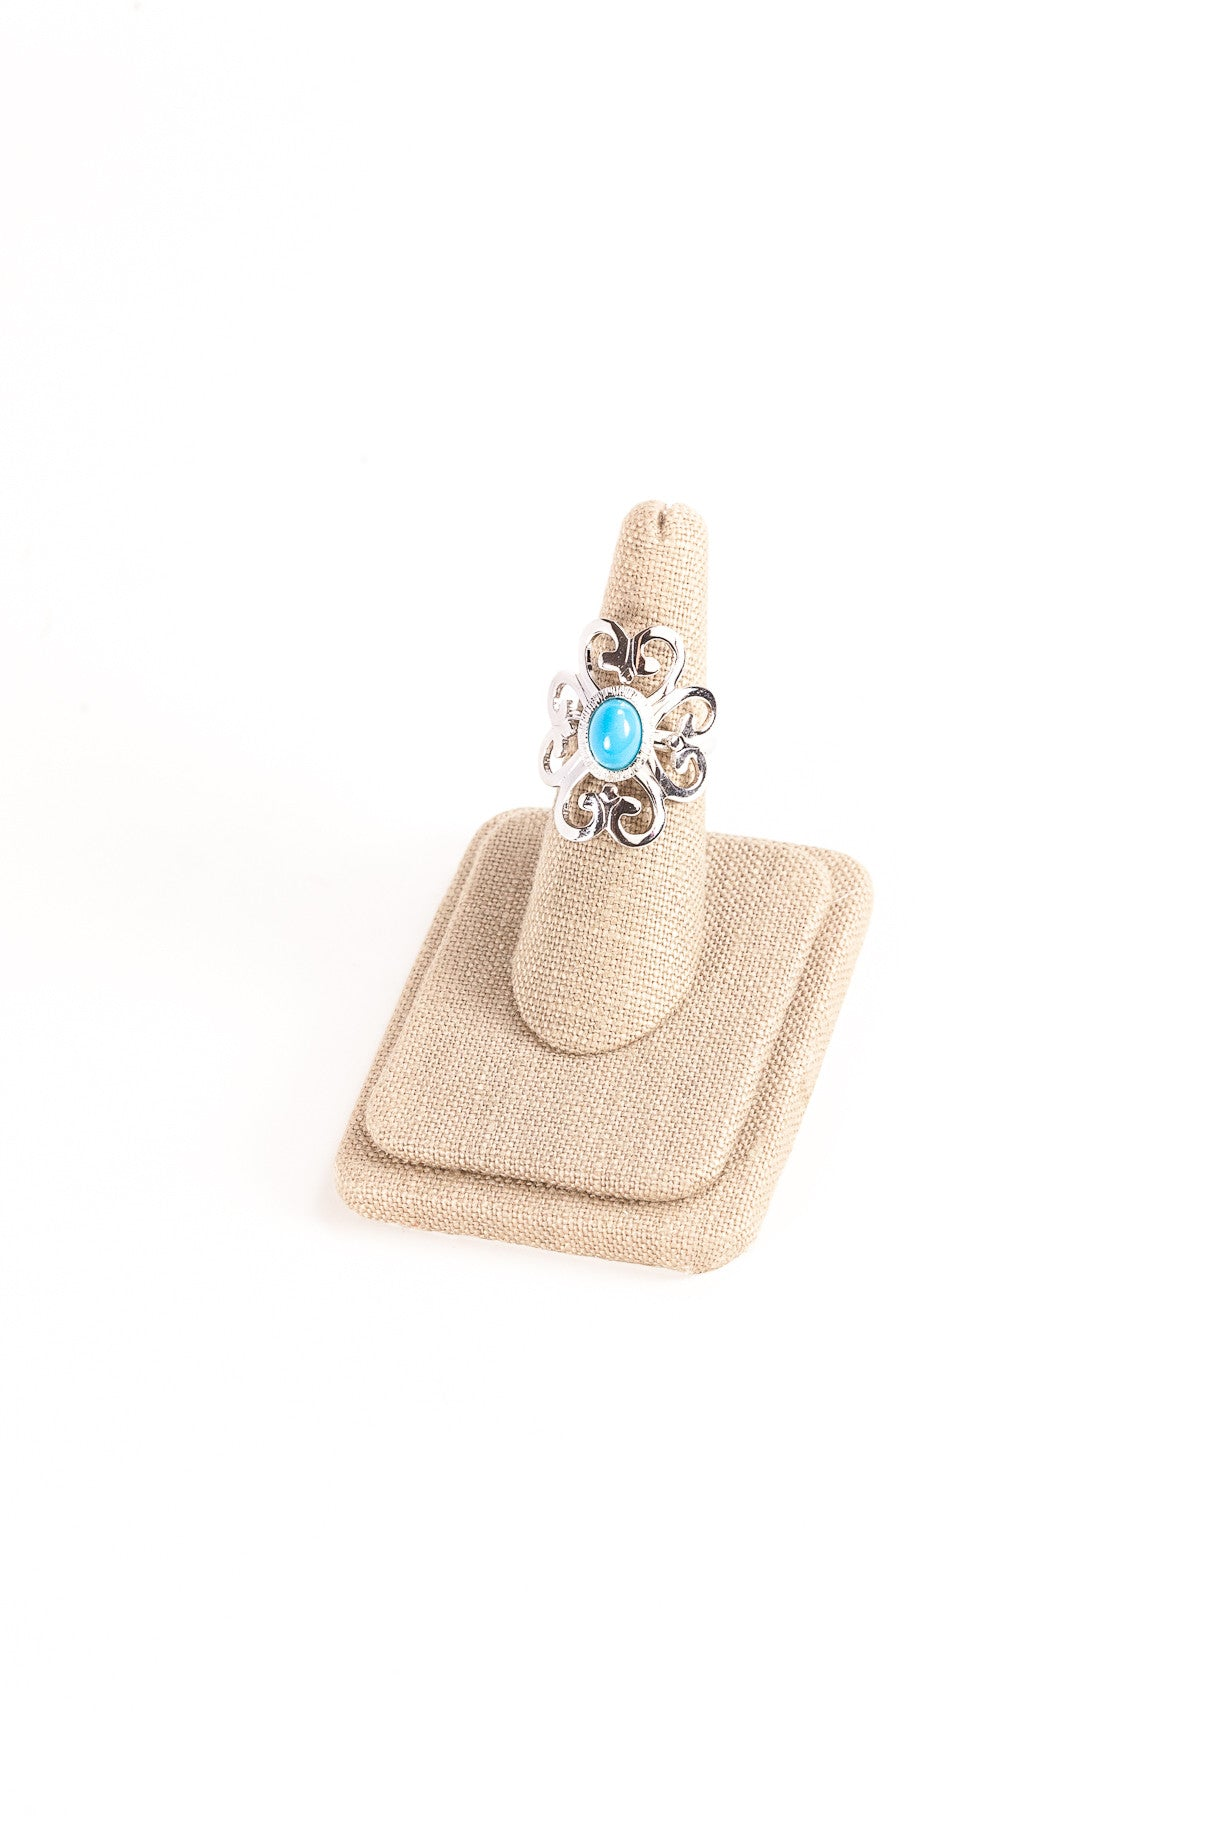 70's__Sarah Coventry__Swirl Turquoise Ring